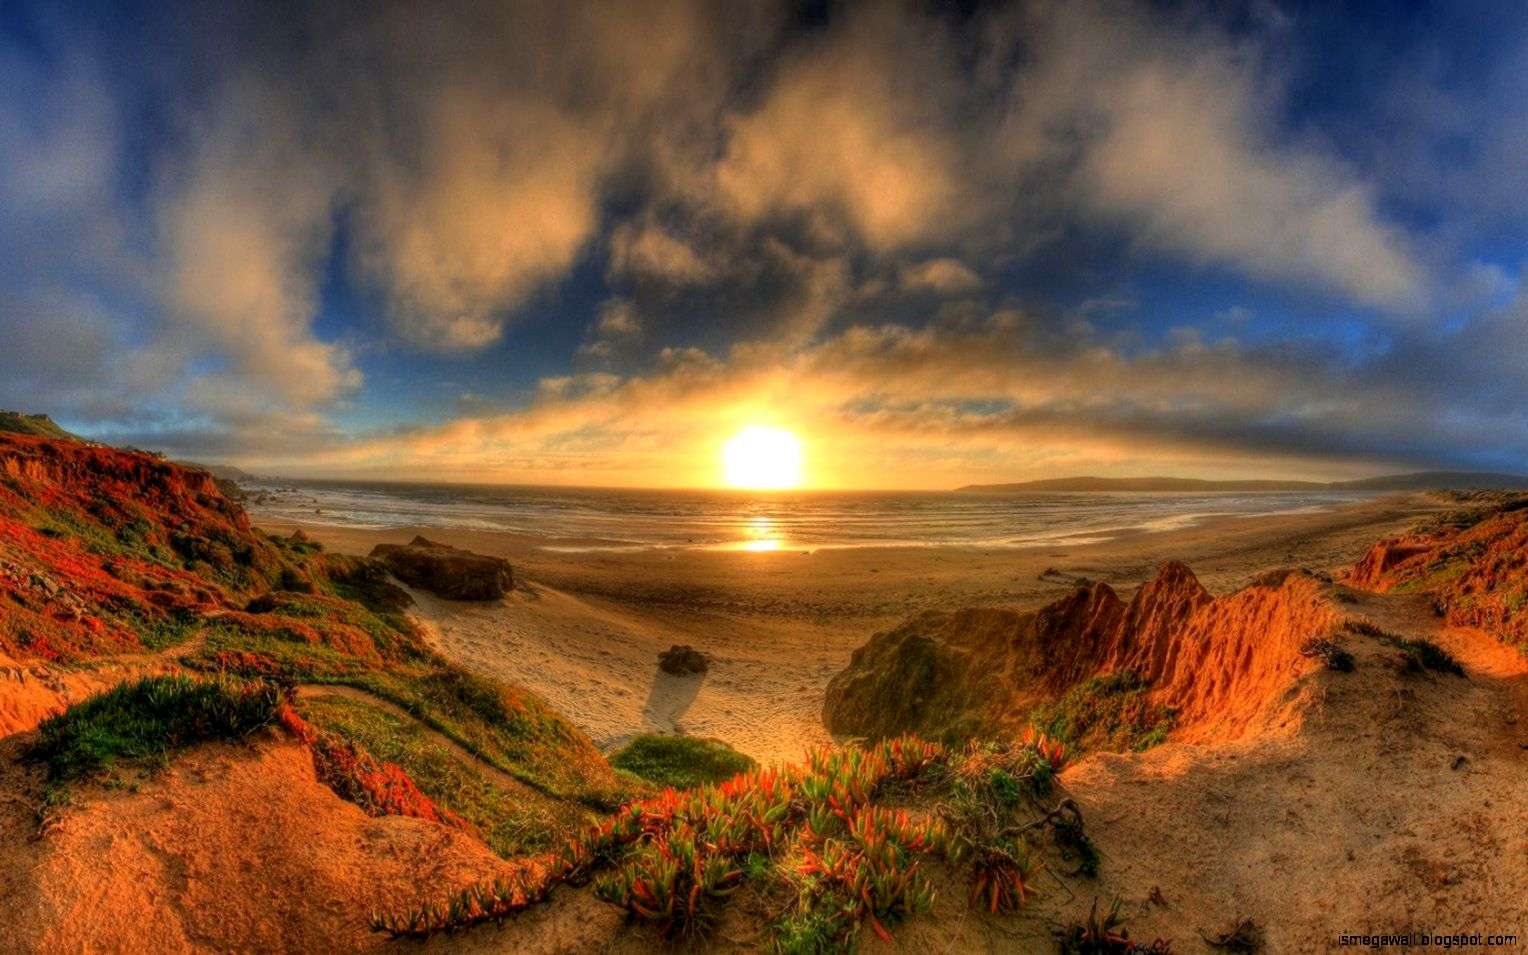 Nature Sunrise Hd Wallpaper | Mega Wallpapers